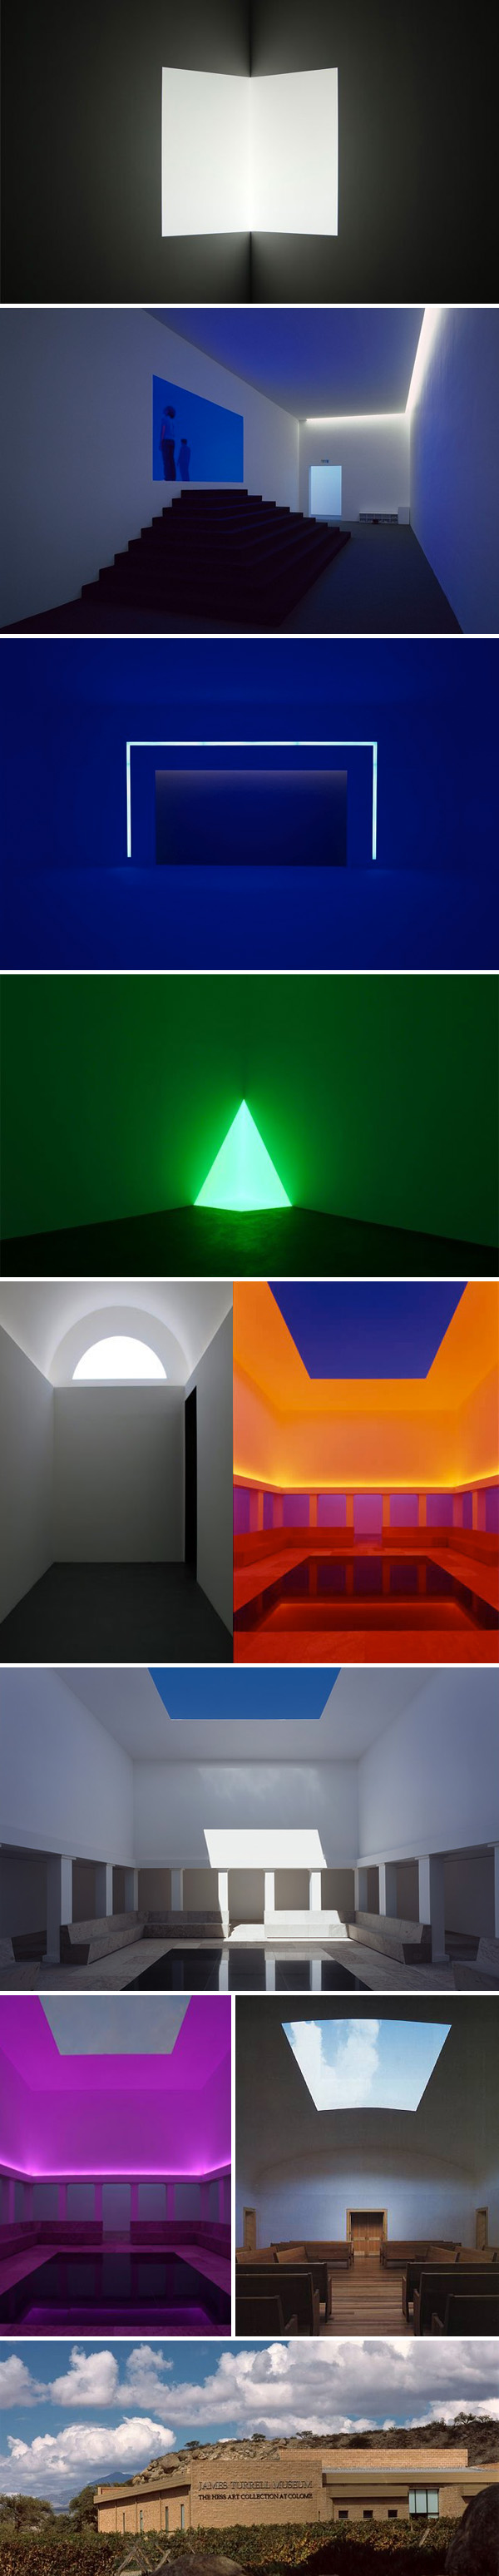 James Turrell, Light installations, contemporary art, Estancia Colomé, Hess Collection